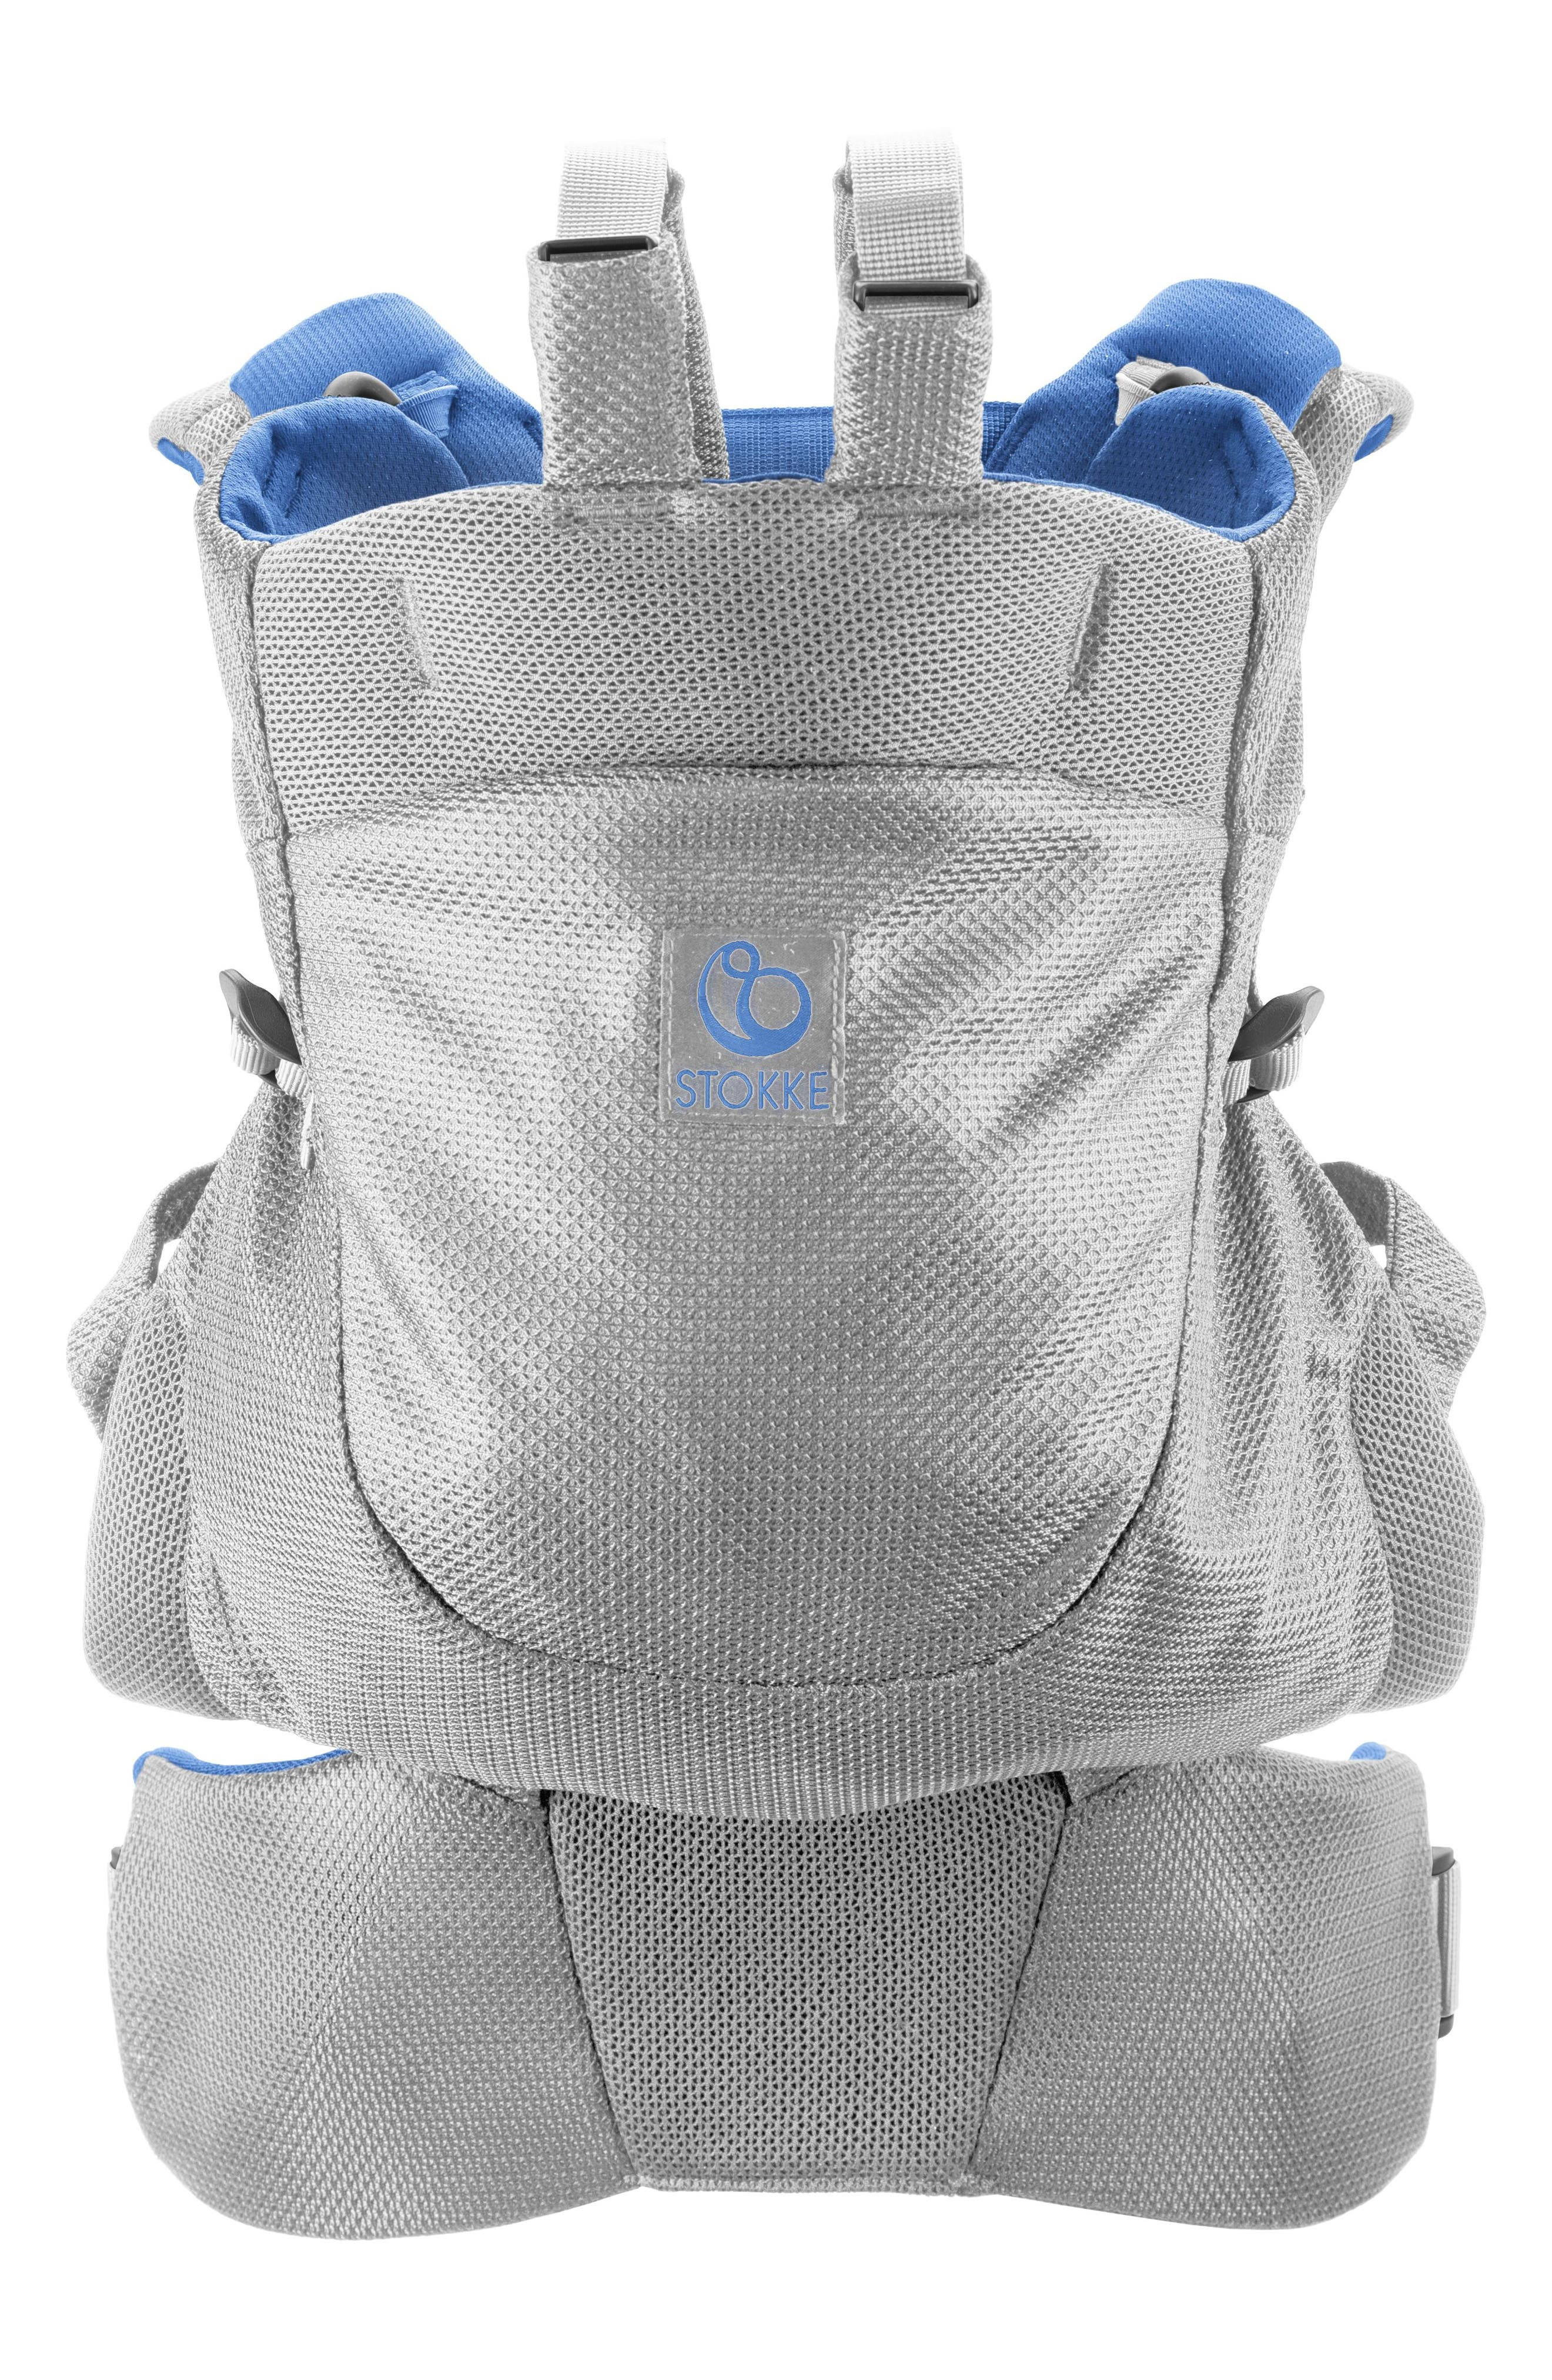 Infant Stokke Mycarrier Frontback Baby Carrier Size One Size  Blue